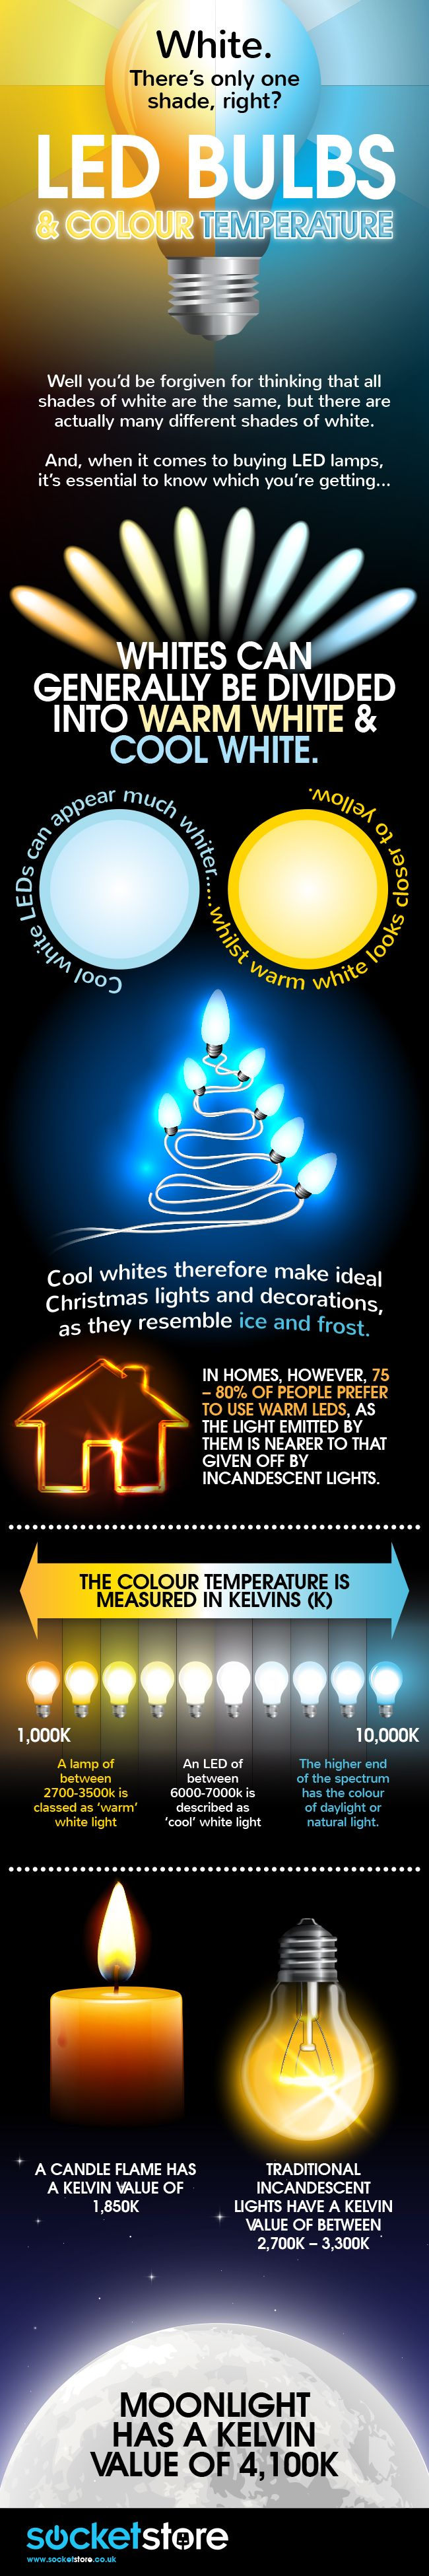 Led Color Temperatures Infographic Bulbs Color Temperature And Room